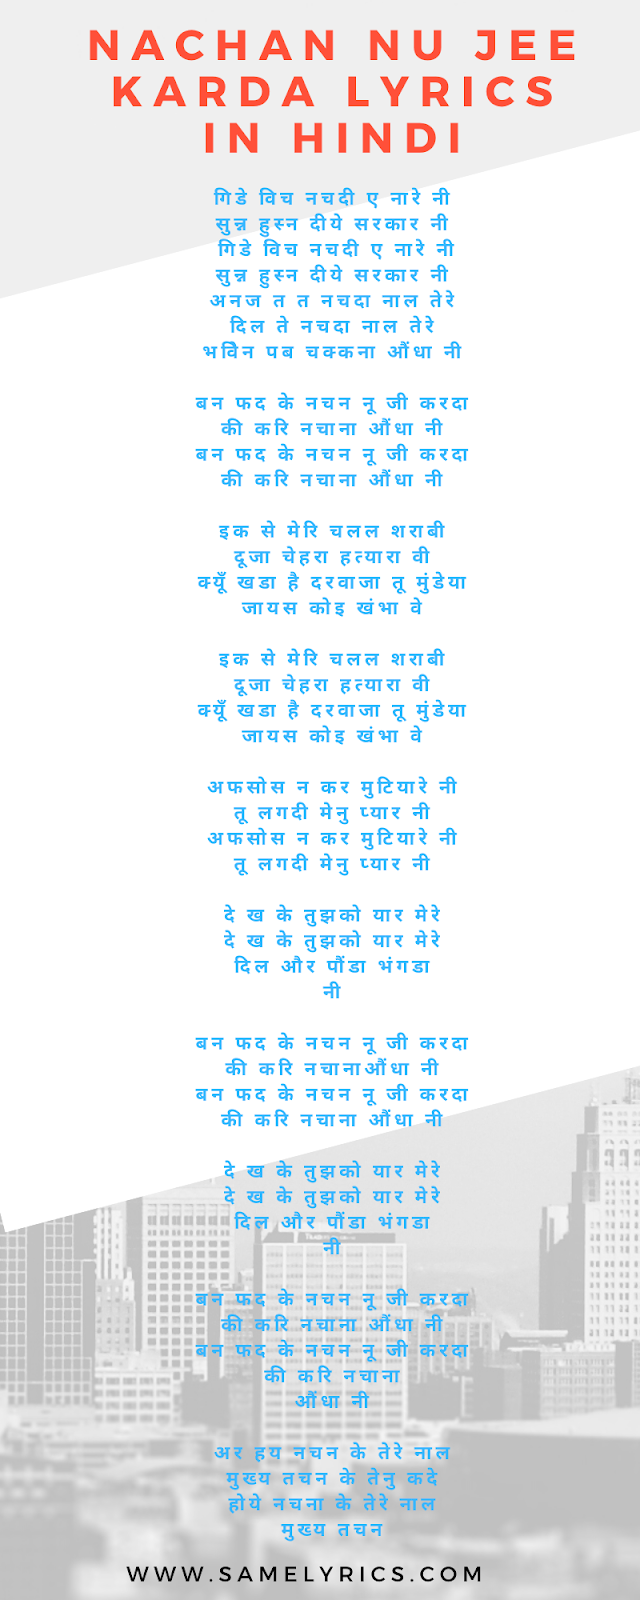 Nachan Nu Jee Karda Lyrics in Hindi